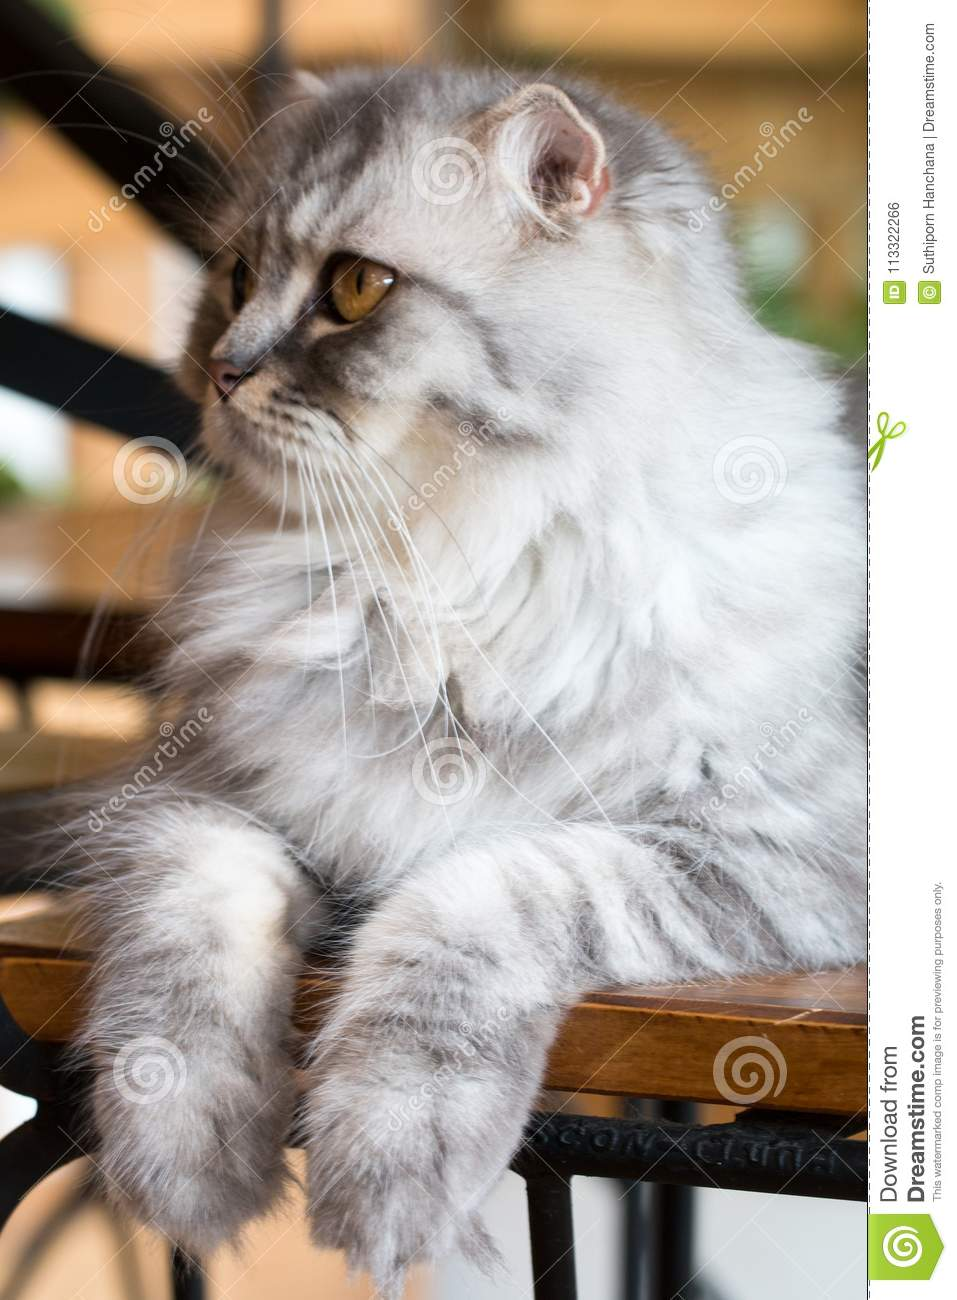 Cat,kitty Persian sit and see isolate on background,front view from the top